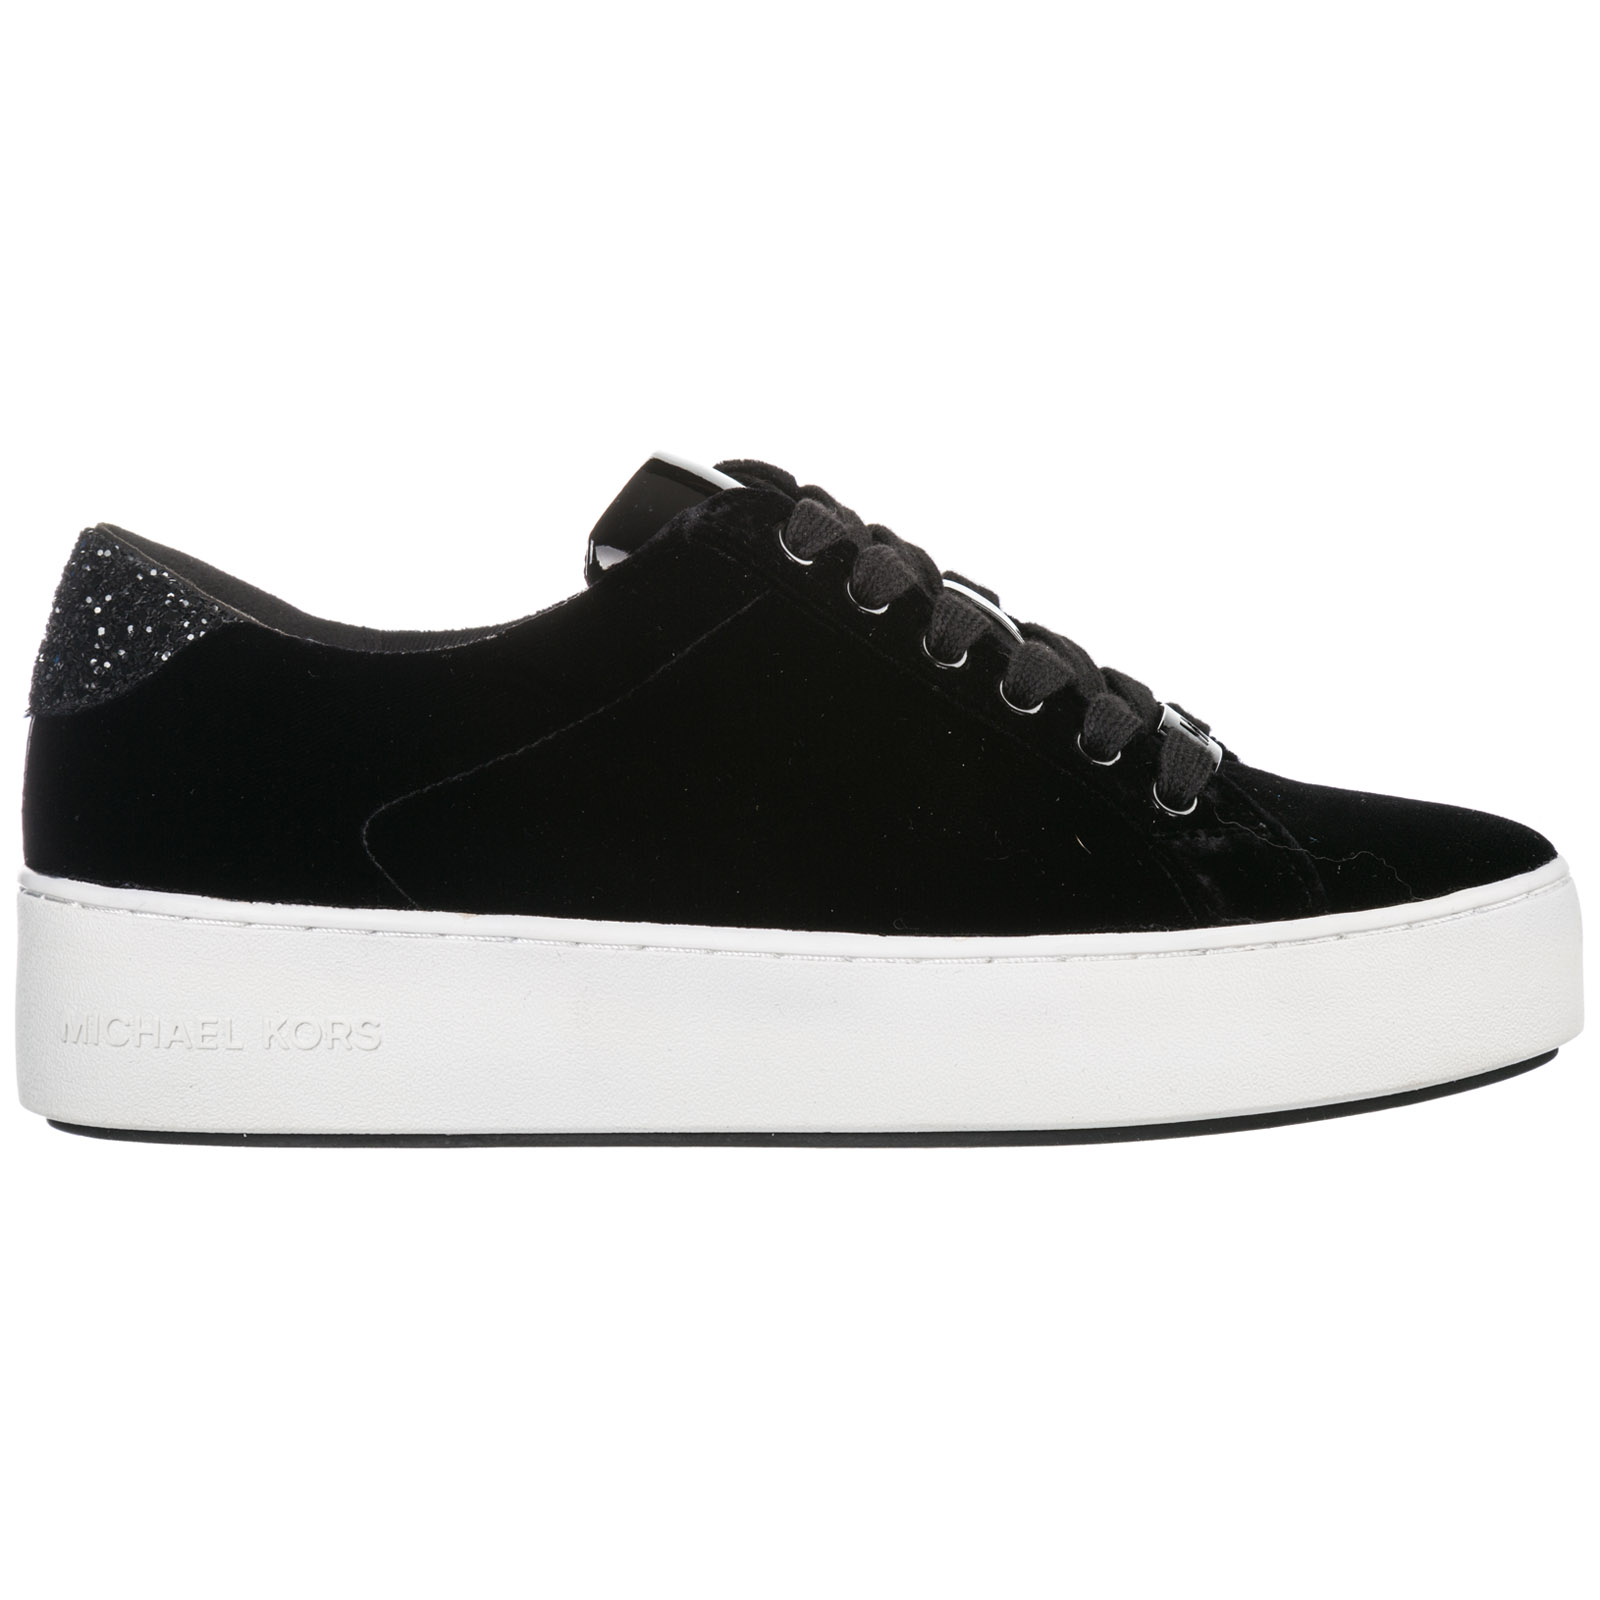 Established theory Miss use  Michael Kors Women's Shoes Trainers Sneakers Poppy In Black   ModeSens